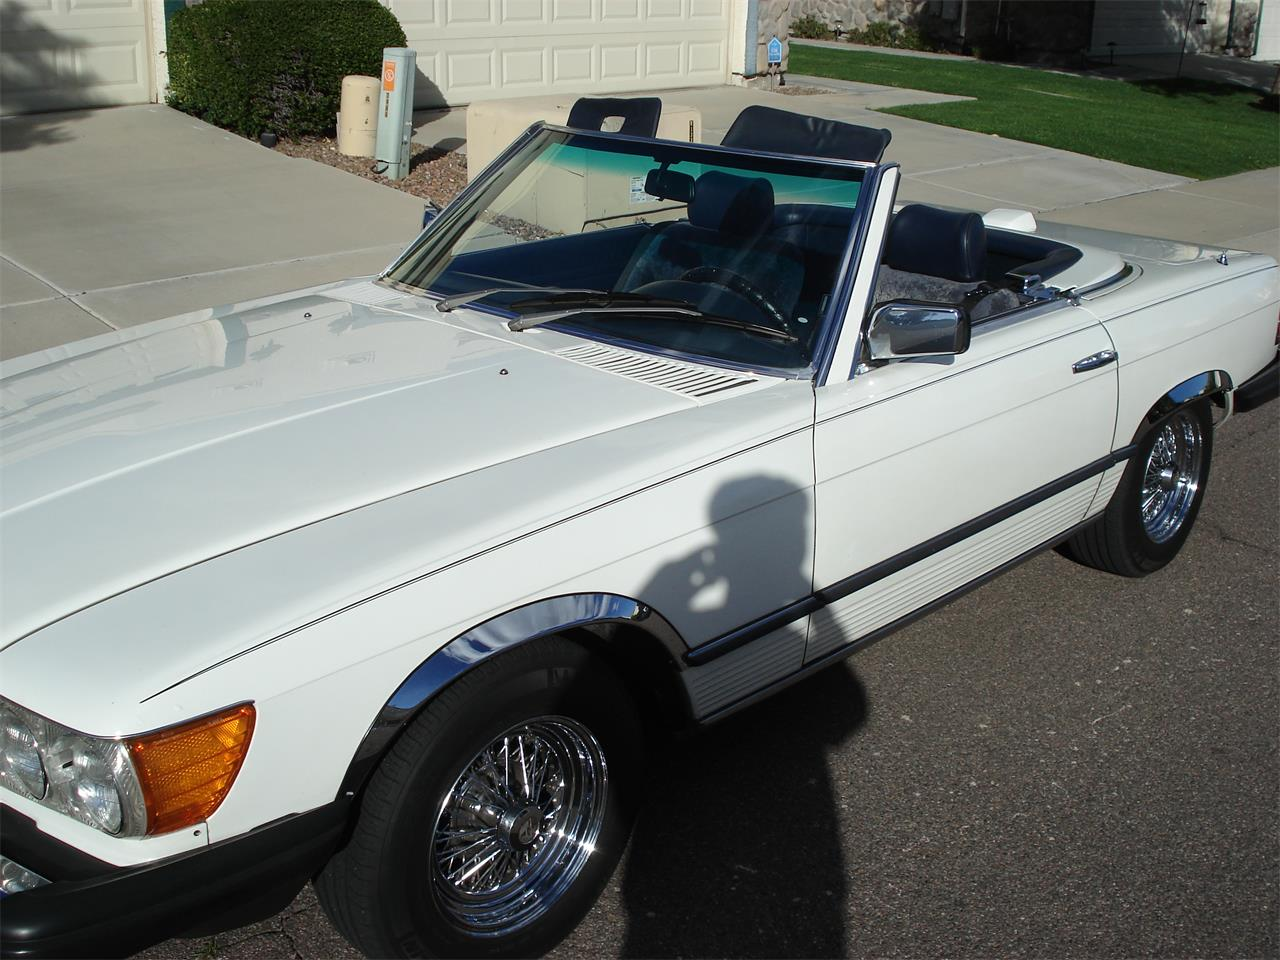 1983 Mercedes-Benz 380SL for sale in Glendale, AZ – photo 3